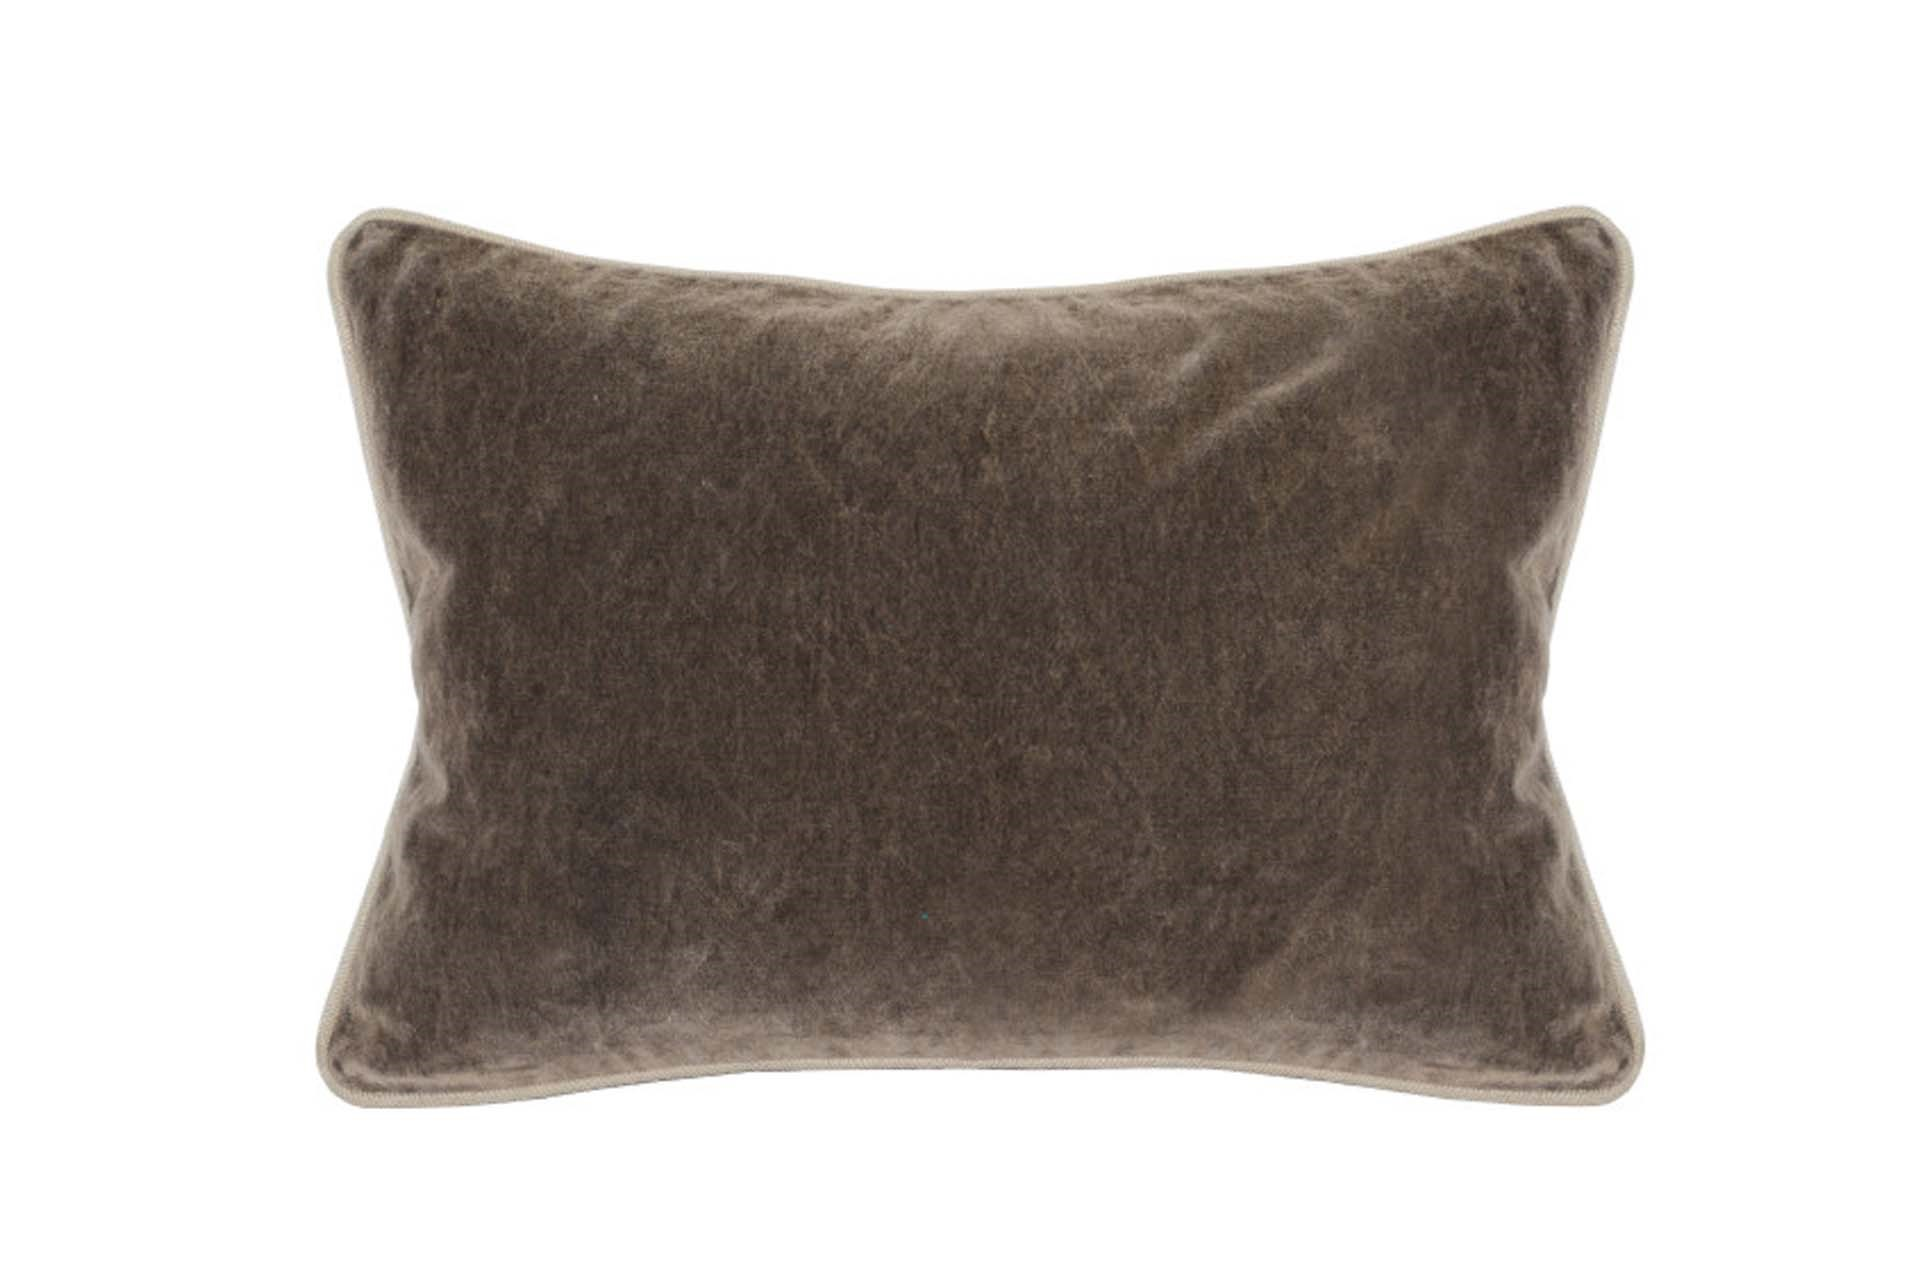 Decorative Pillows Living Spaces : Accent Pillow-Mushroom Washed Velvet 14X20 Living Spaces